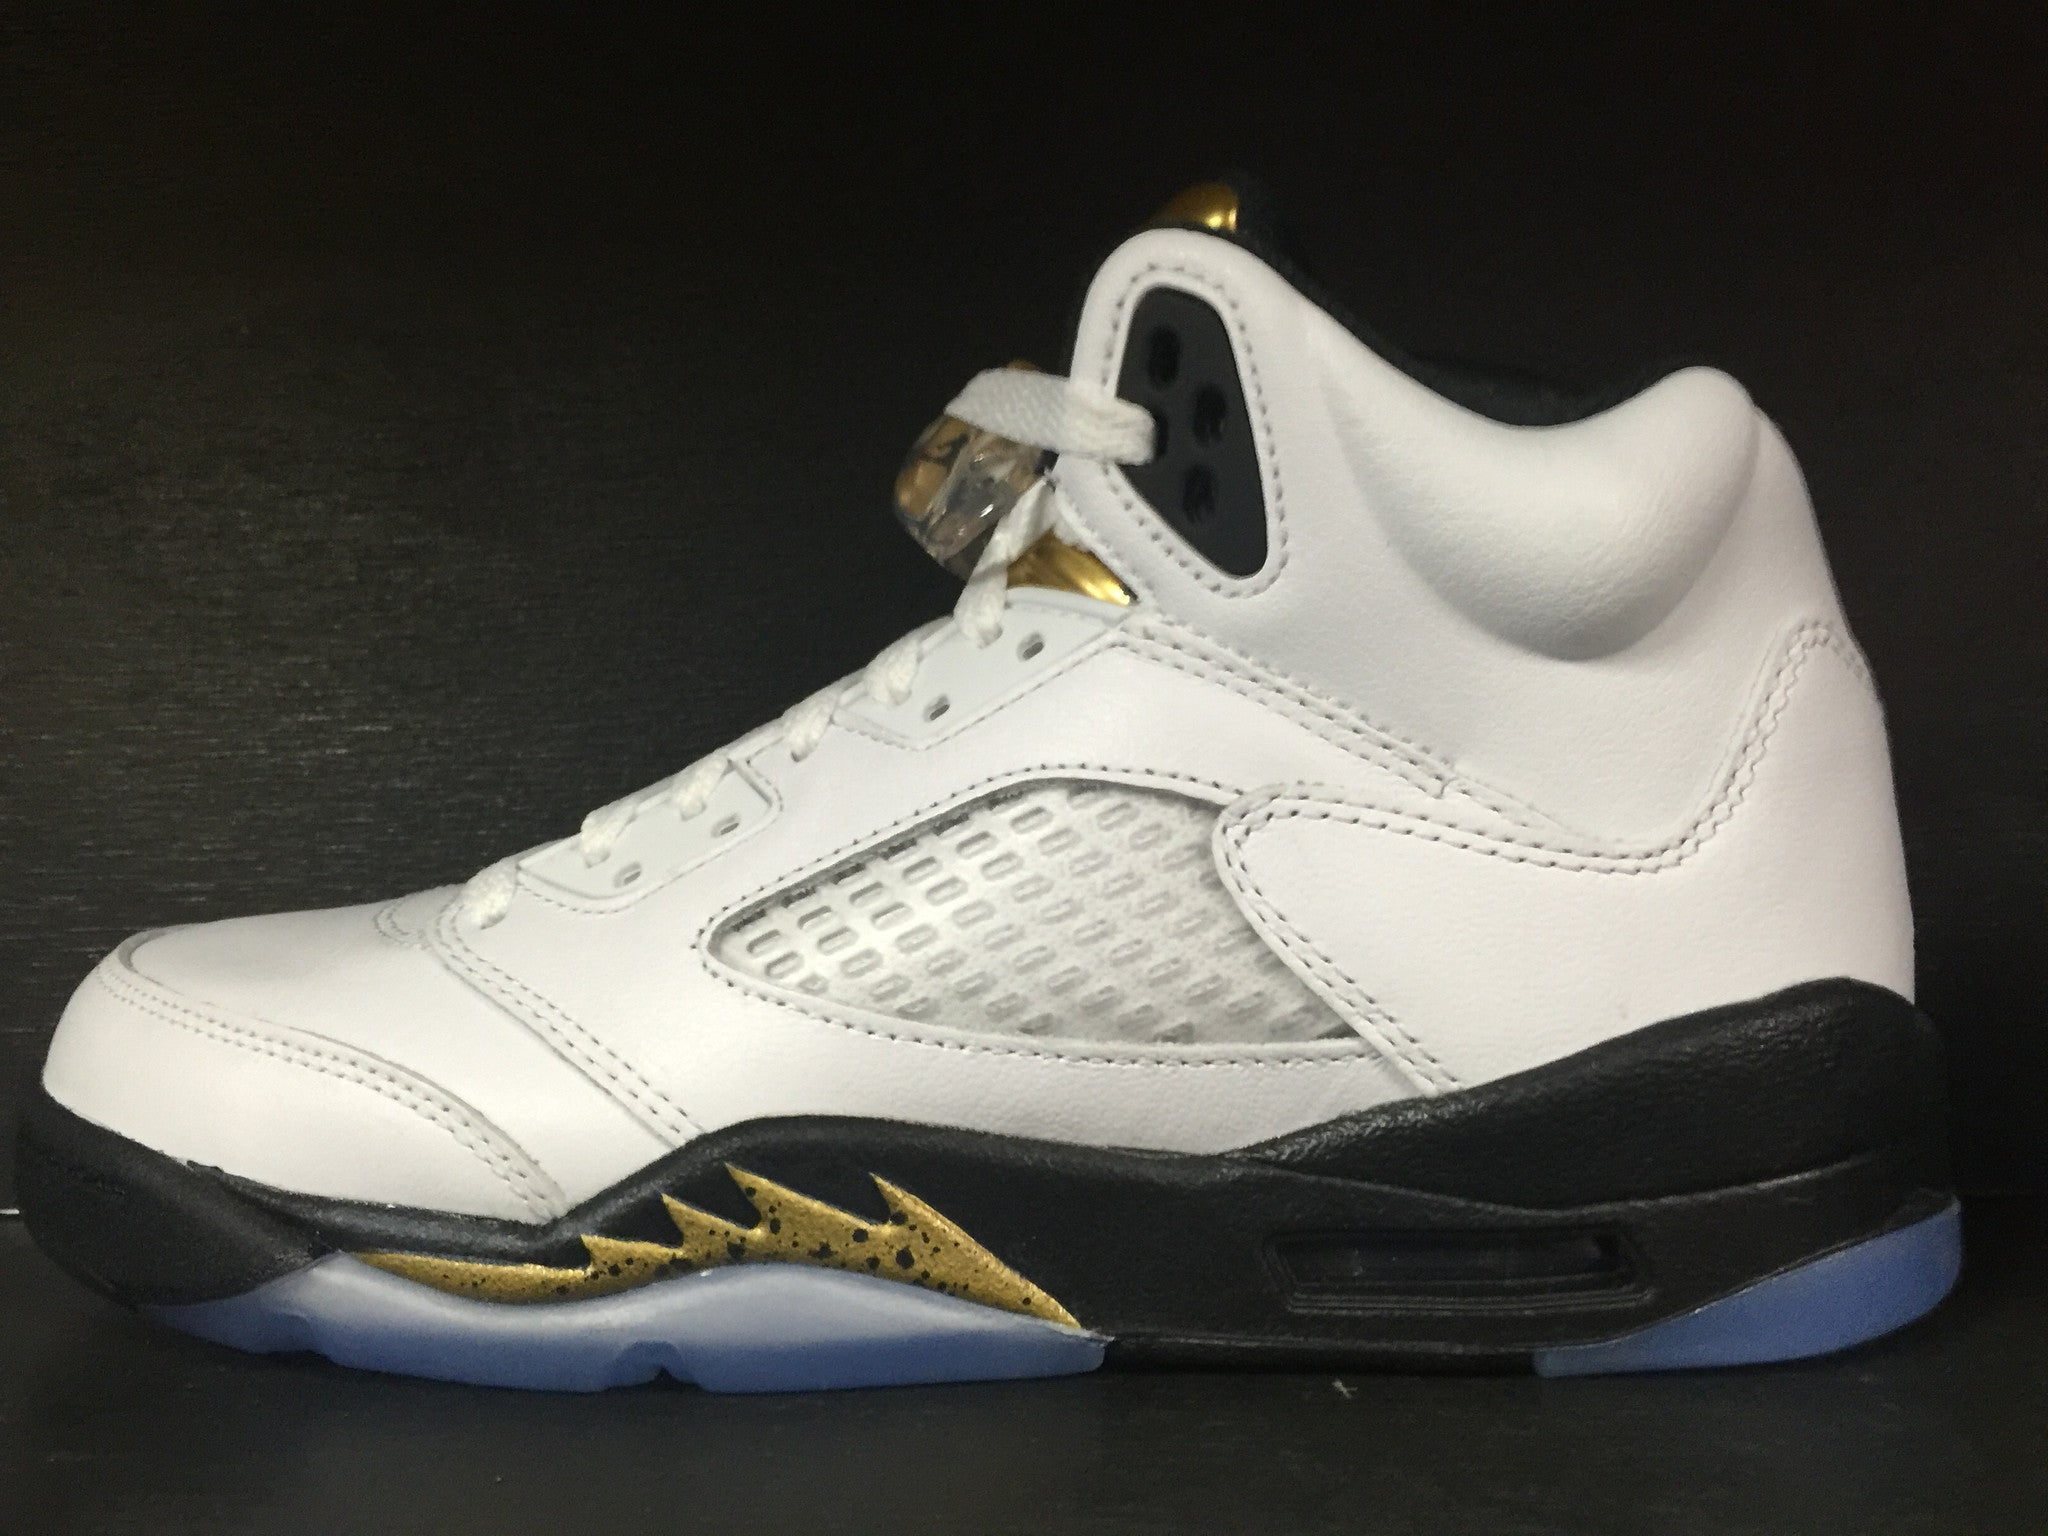 Air Jordan 5 Retro 'Olympic' 'Gold' GS